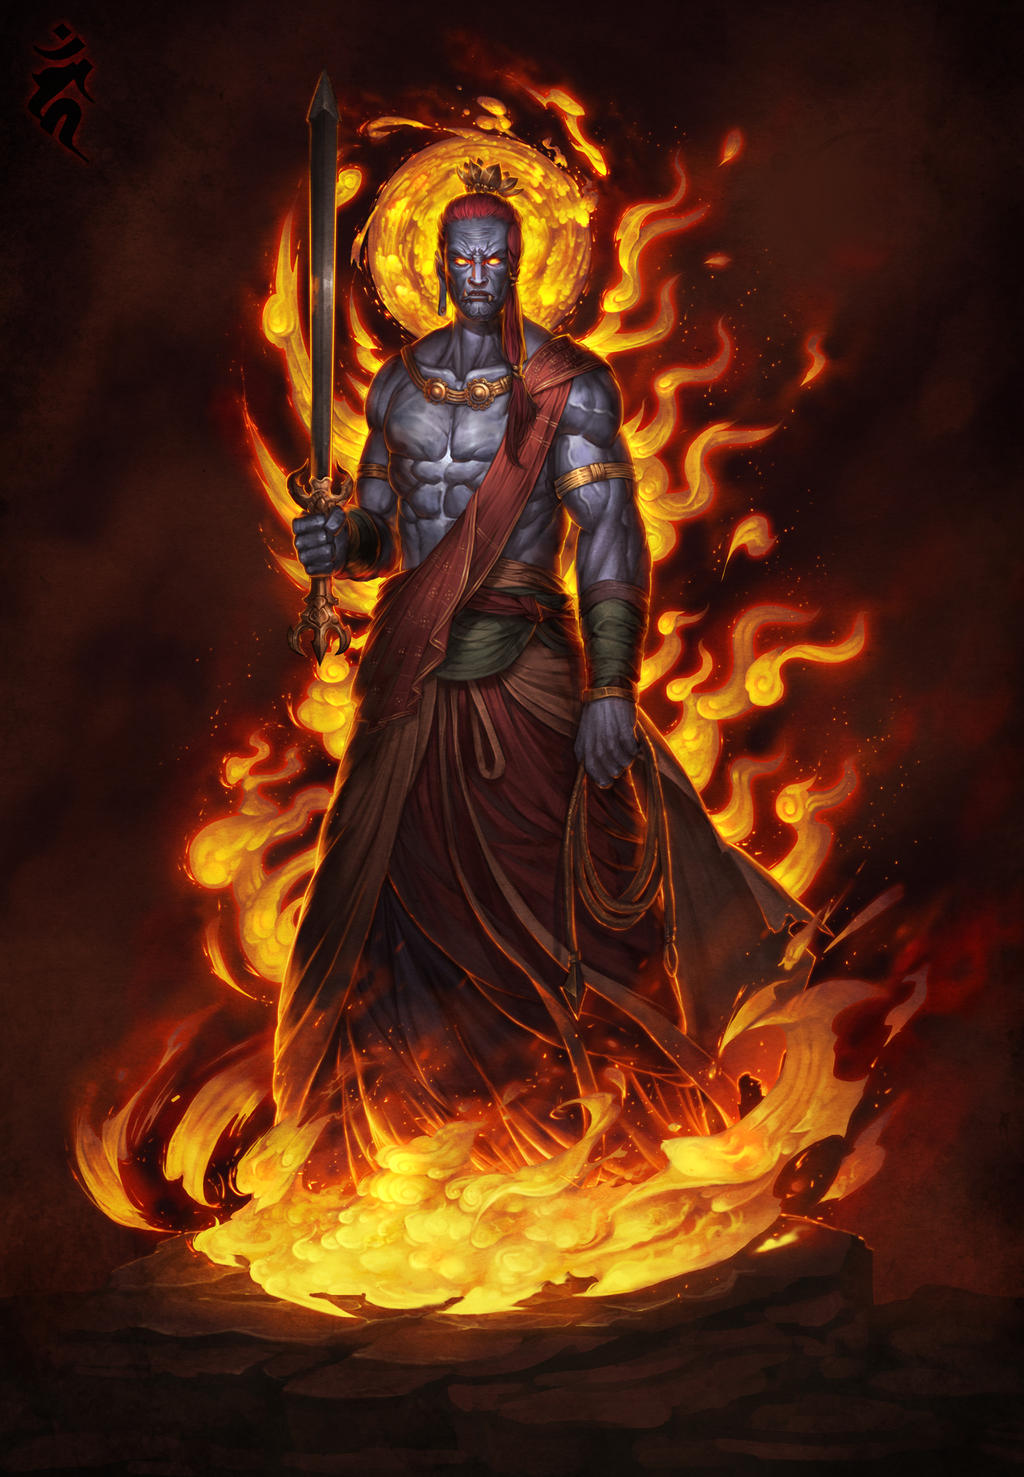 fudo_myoo_the_demons_slayer_by_sgt_lonel